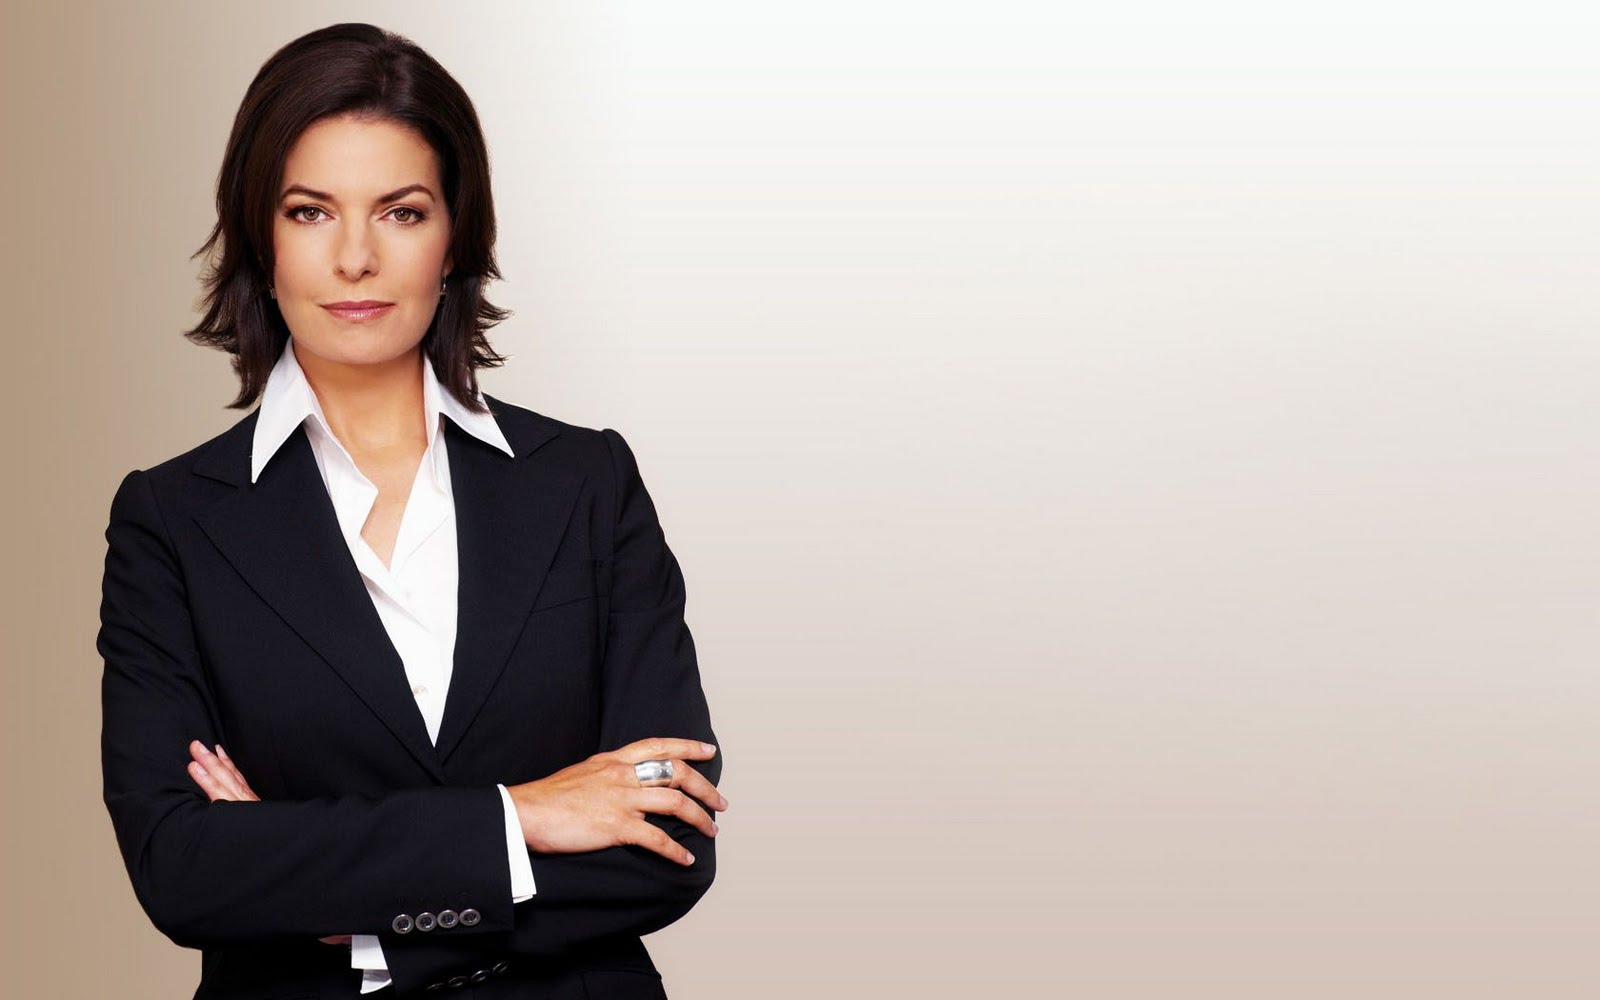 Sela ward celebrity movie archive